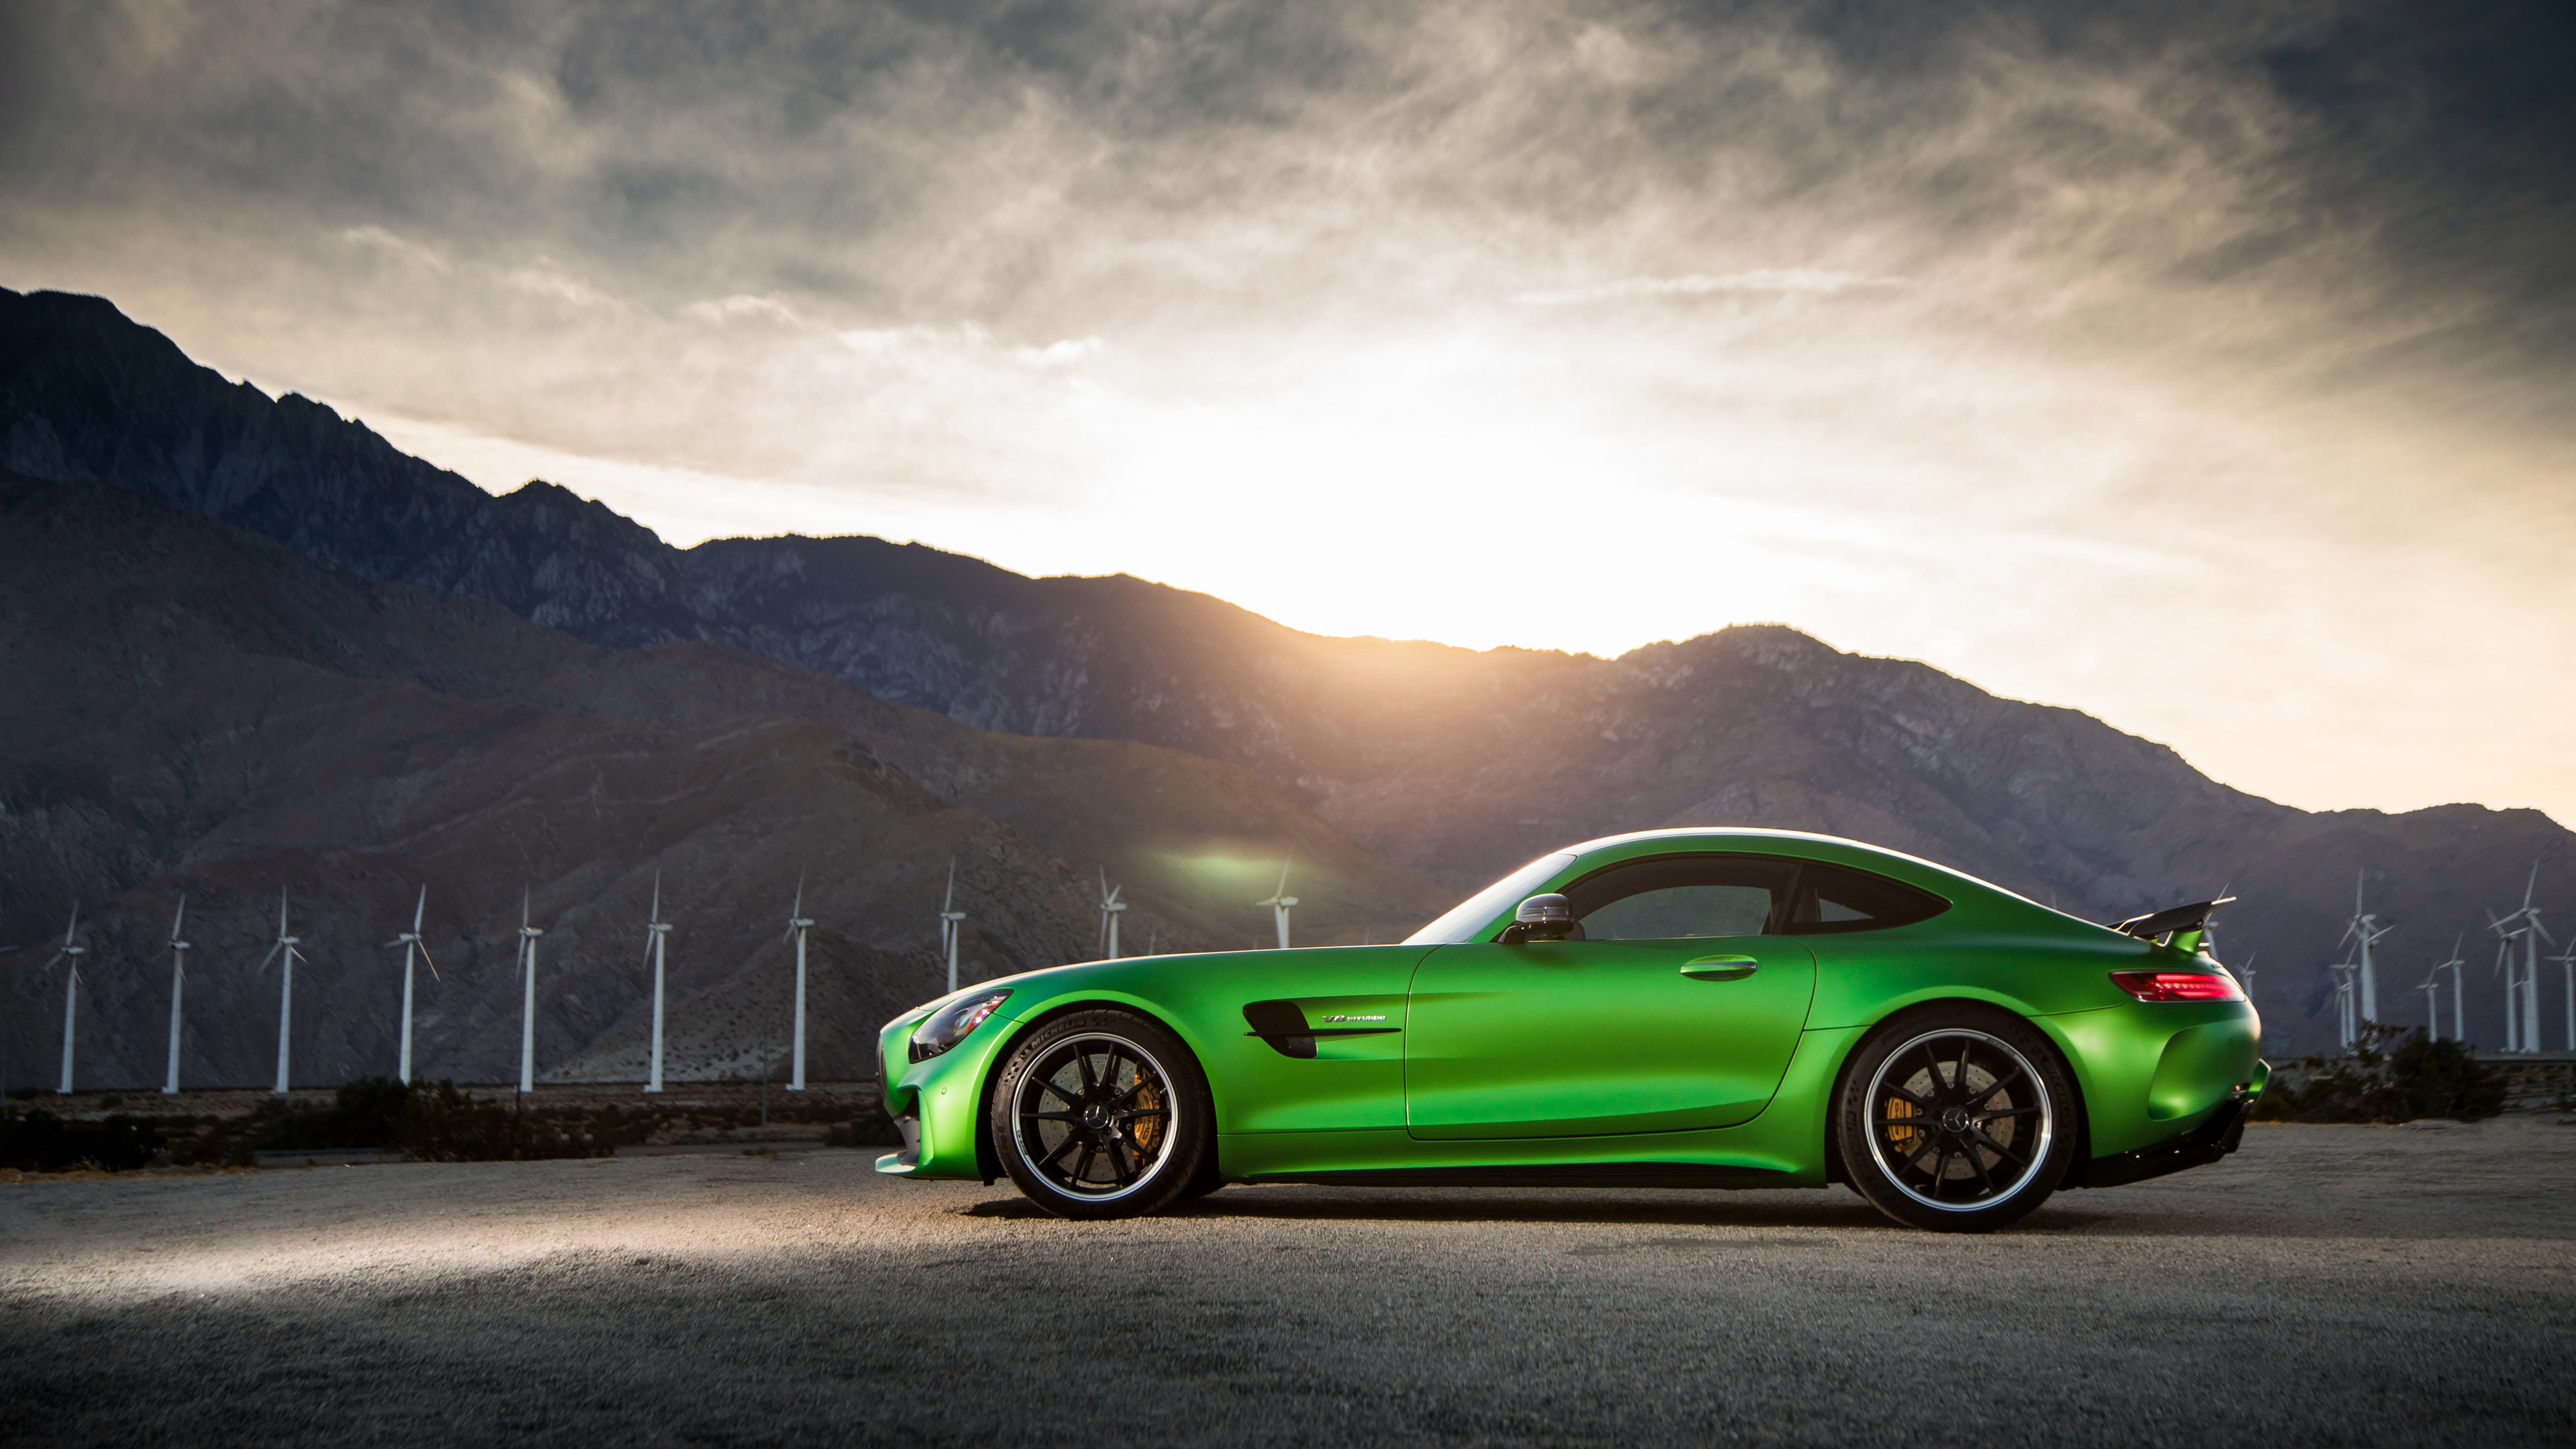 mercedes amg gt r side view 1539108949 - Mercedes Amg Gt R Side View - mercedes wallpapers, mercedes amg gtr wallpapers, hd-wallpapers, cars wallpapers, 4k-wallpapers, 2018 cars wallpapers